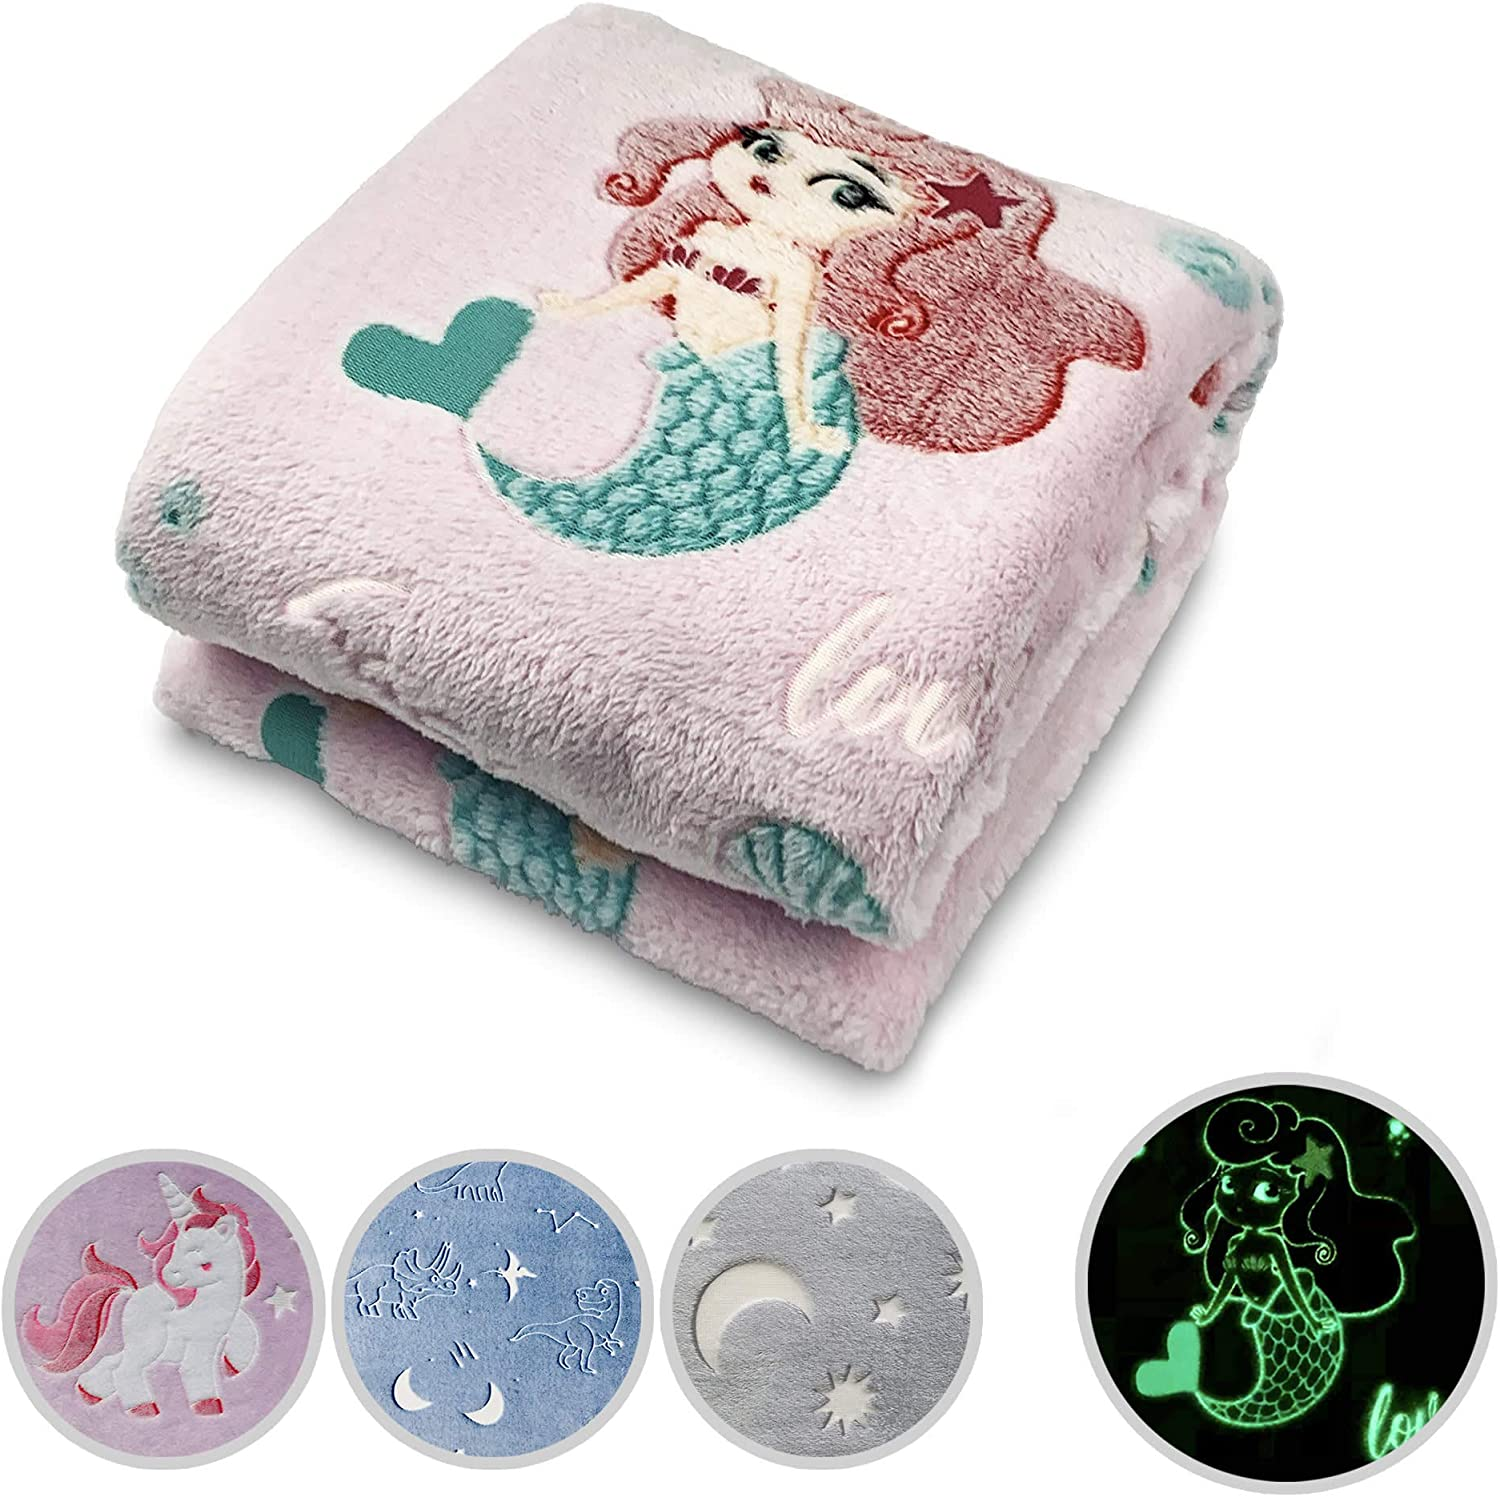 Glow in The Dark Throw Blanket Pink Mermaid Personalized Gifts for Girls Boys and Adults Cozy Super Soft Plush Fleece Throw Blanket for Everyday Use and Every Occasion (50x60 Inches) (Mermaid)